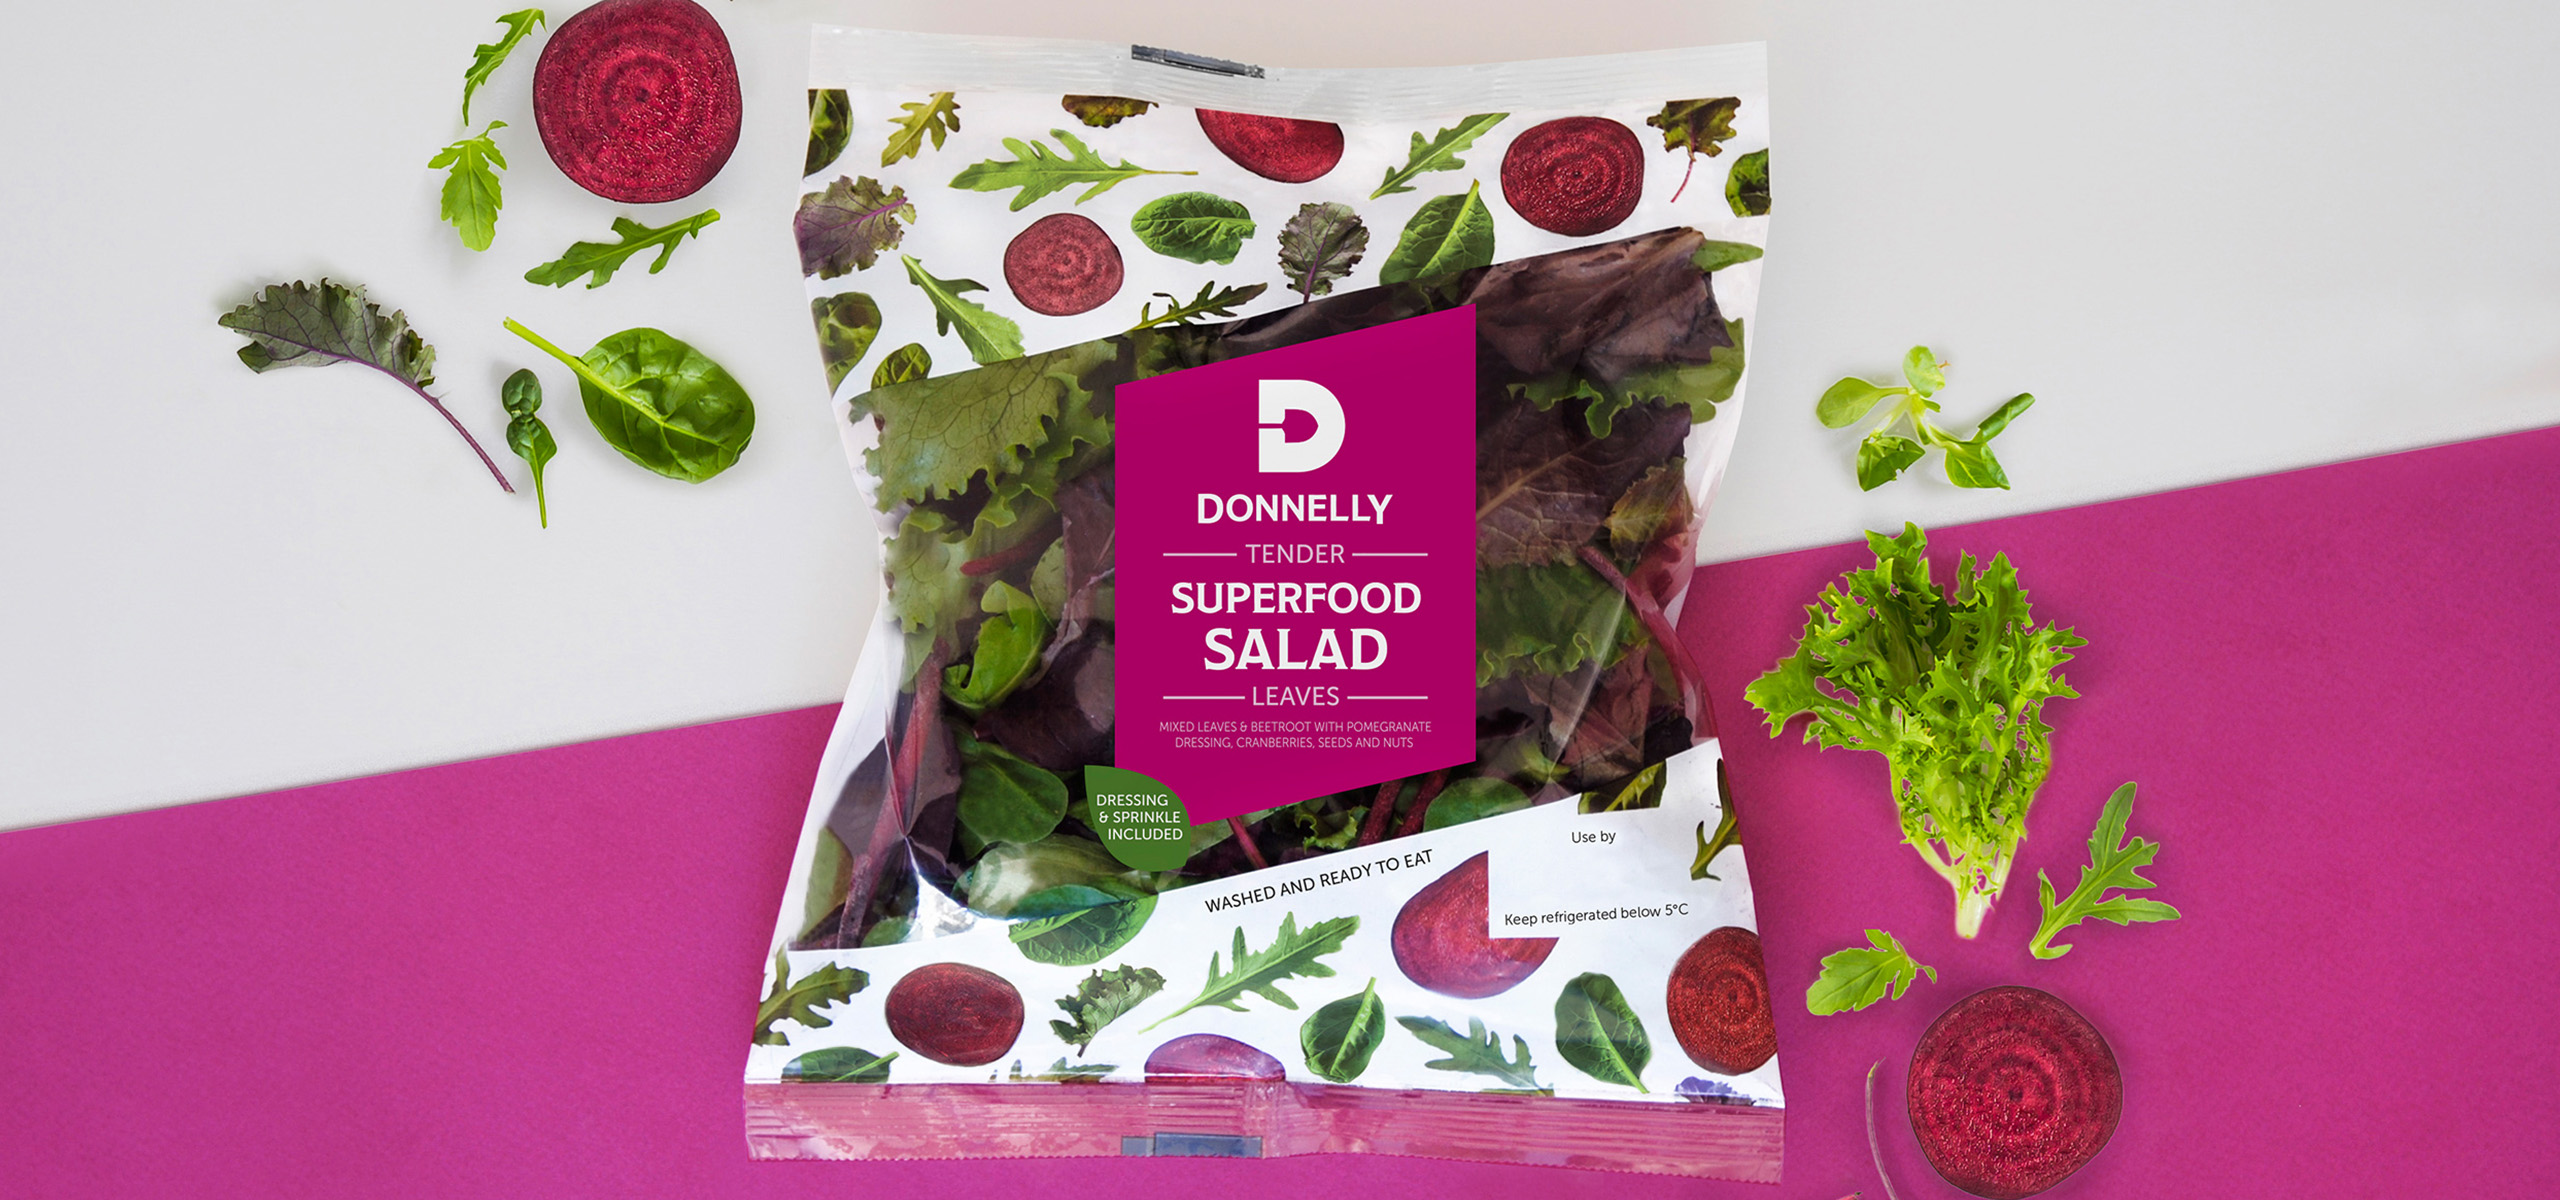 Superfood salad packaging for food brand Donnelly, designed by White Bear Studio